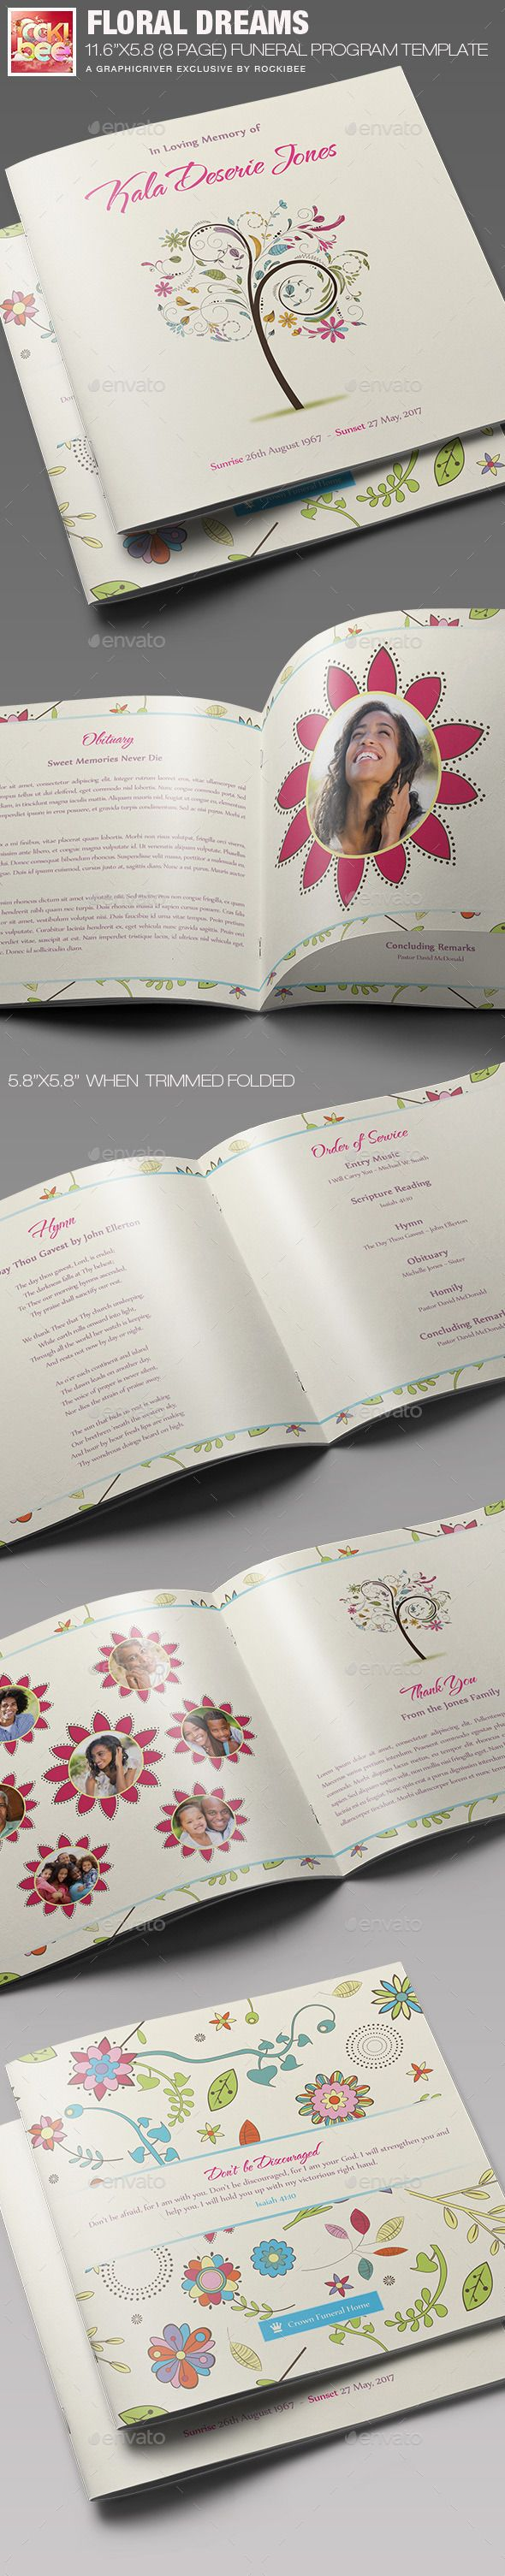 Floral Dreams Funeral Program Template  Program Template Funeral